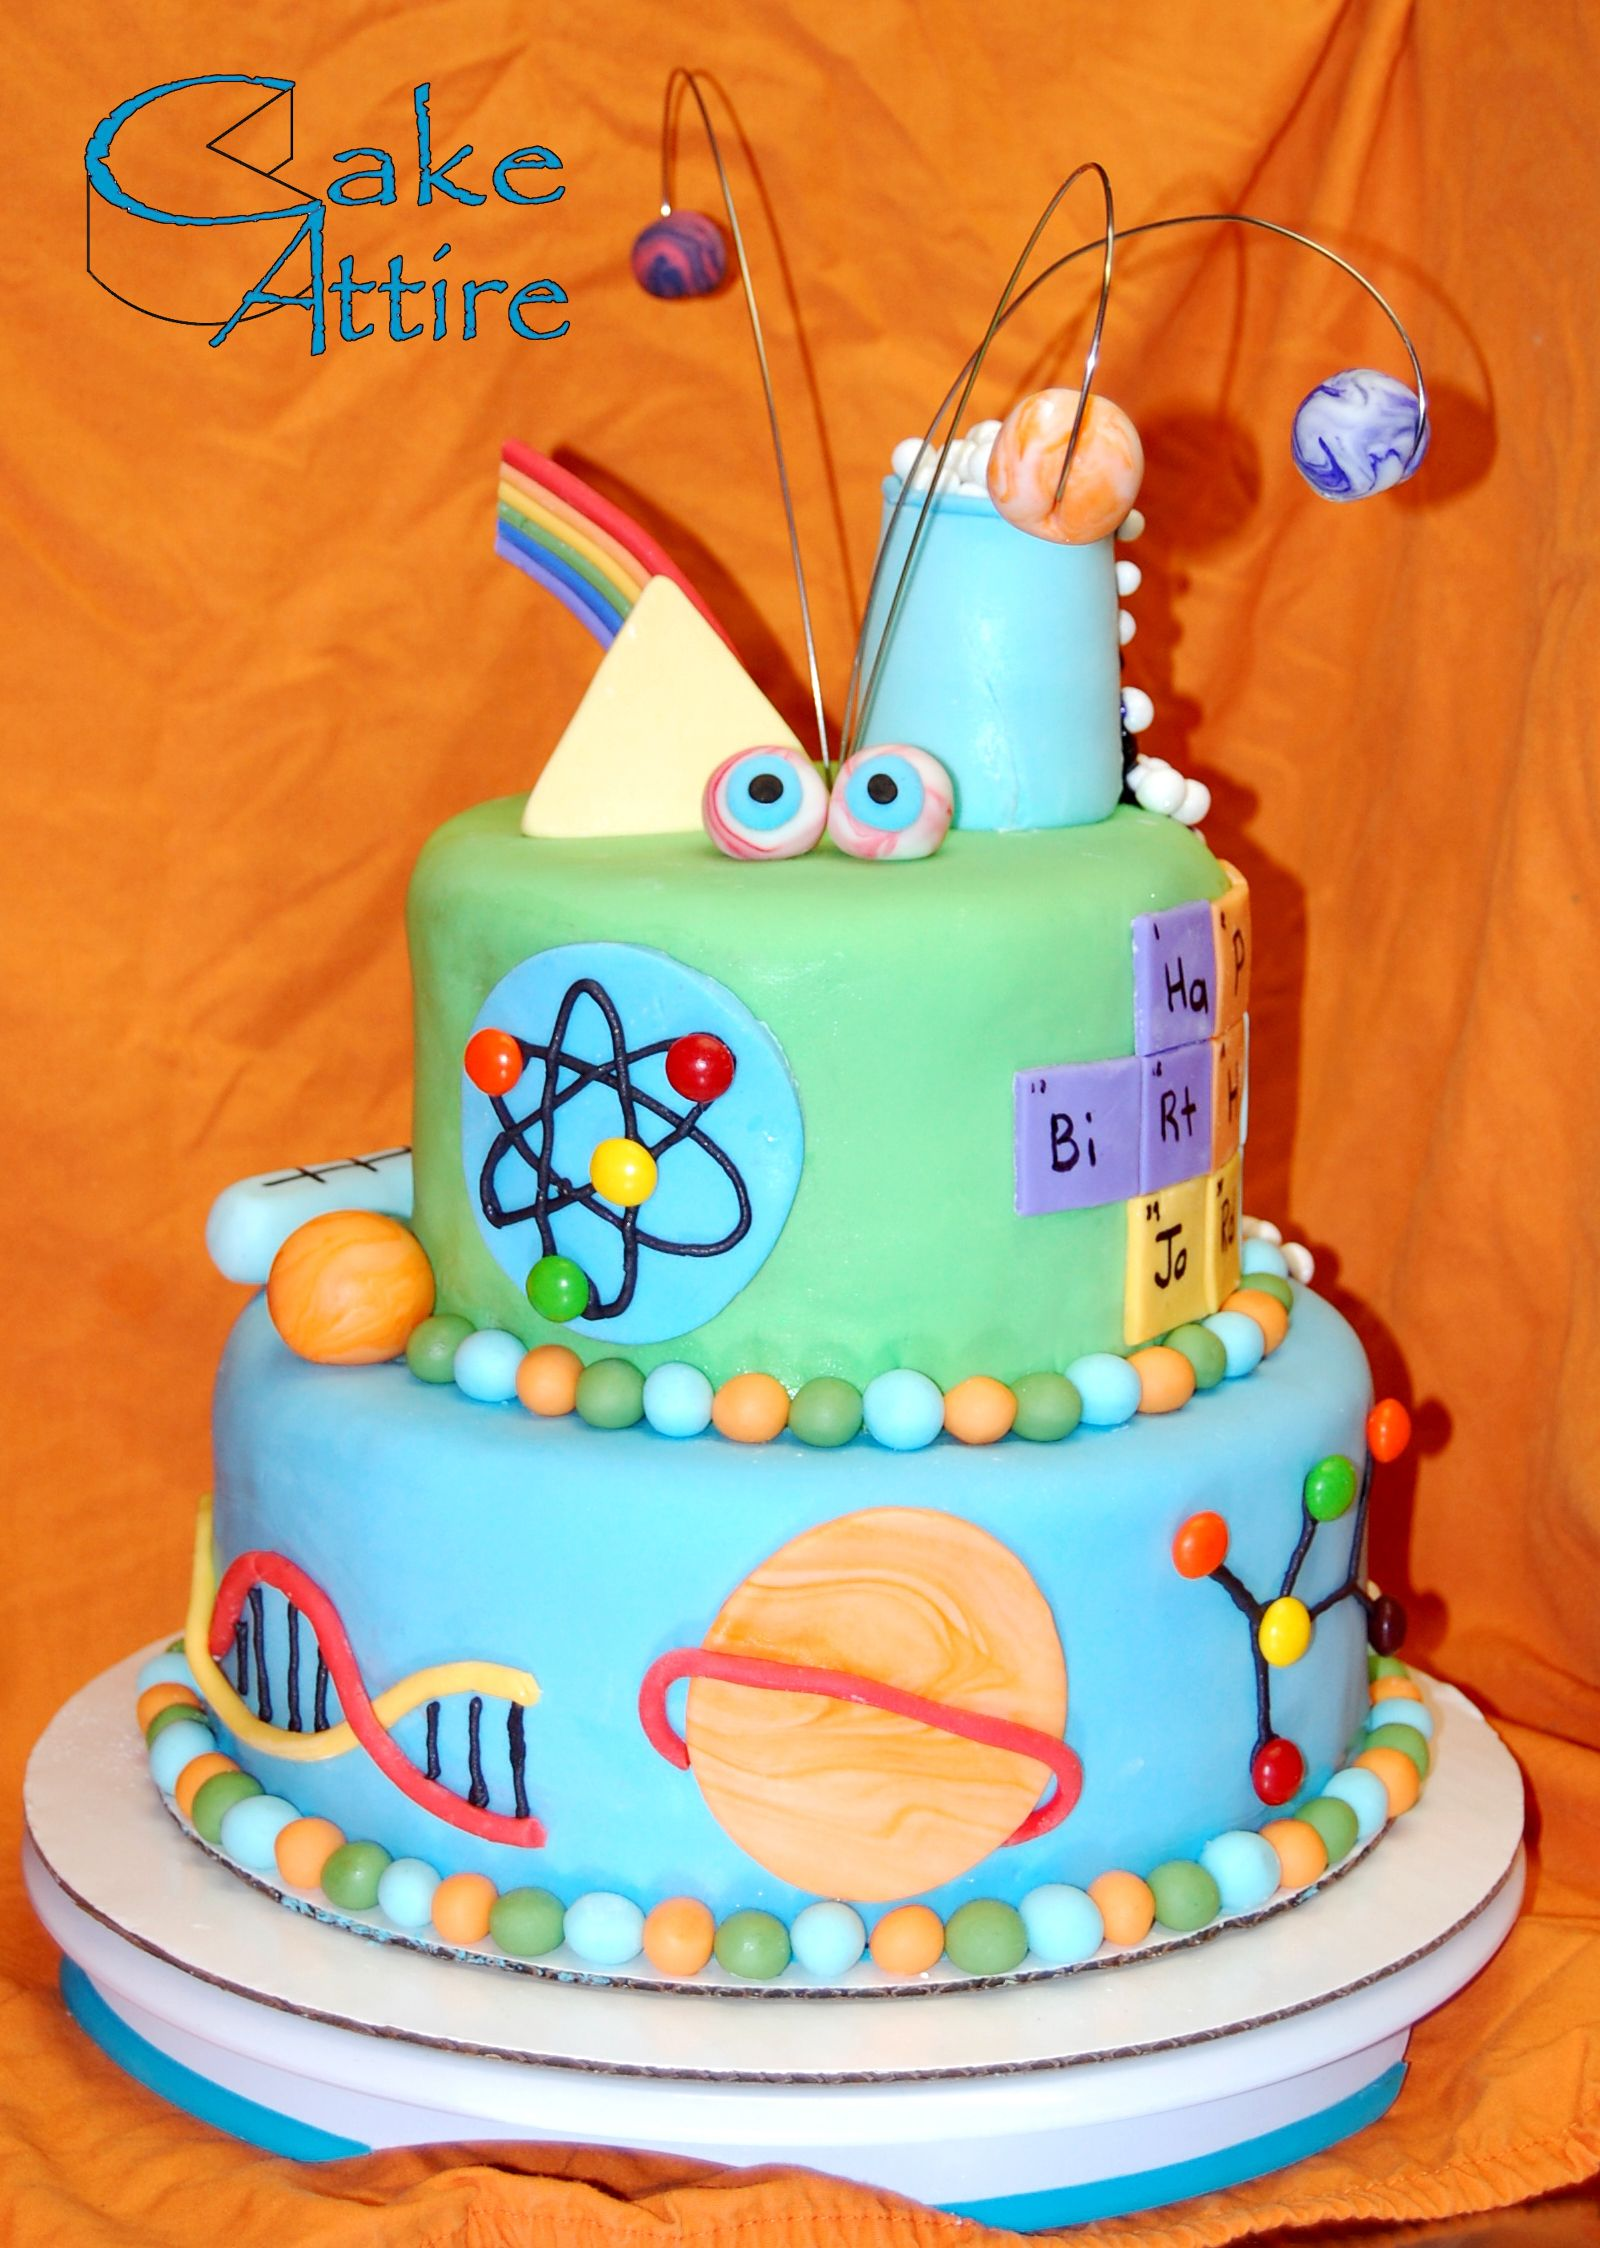 Magnificent Mad Science Birthday Cake With Images Science Cake Scientist Personalised Birthday Cards Petedlily Jamesorg